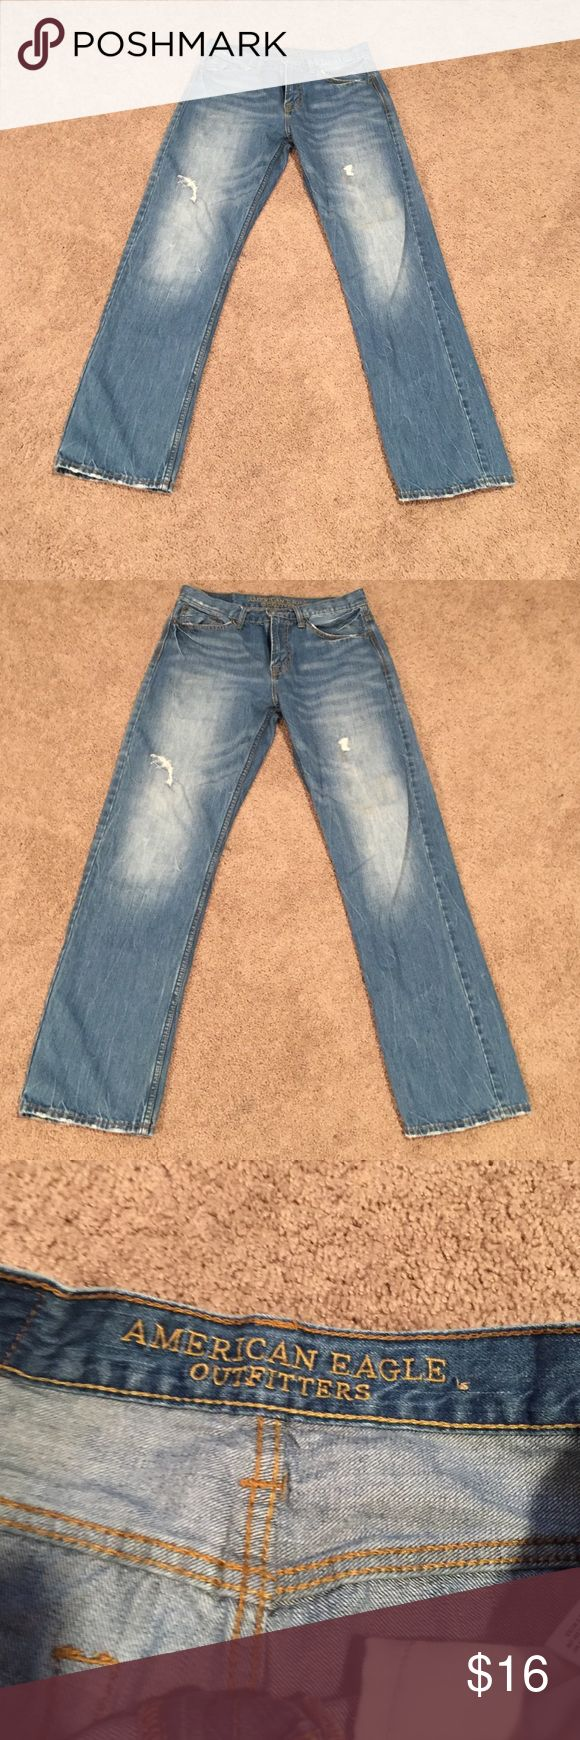 Men's American eagle jeans size 30x32 Men's relaxed straight fit jeans American Eagle Outfitters Jeans